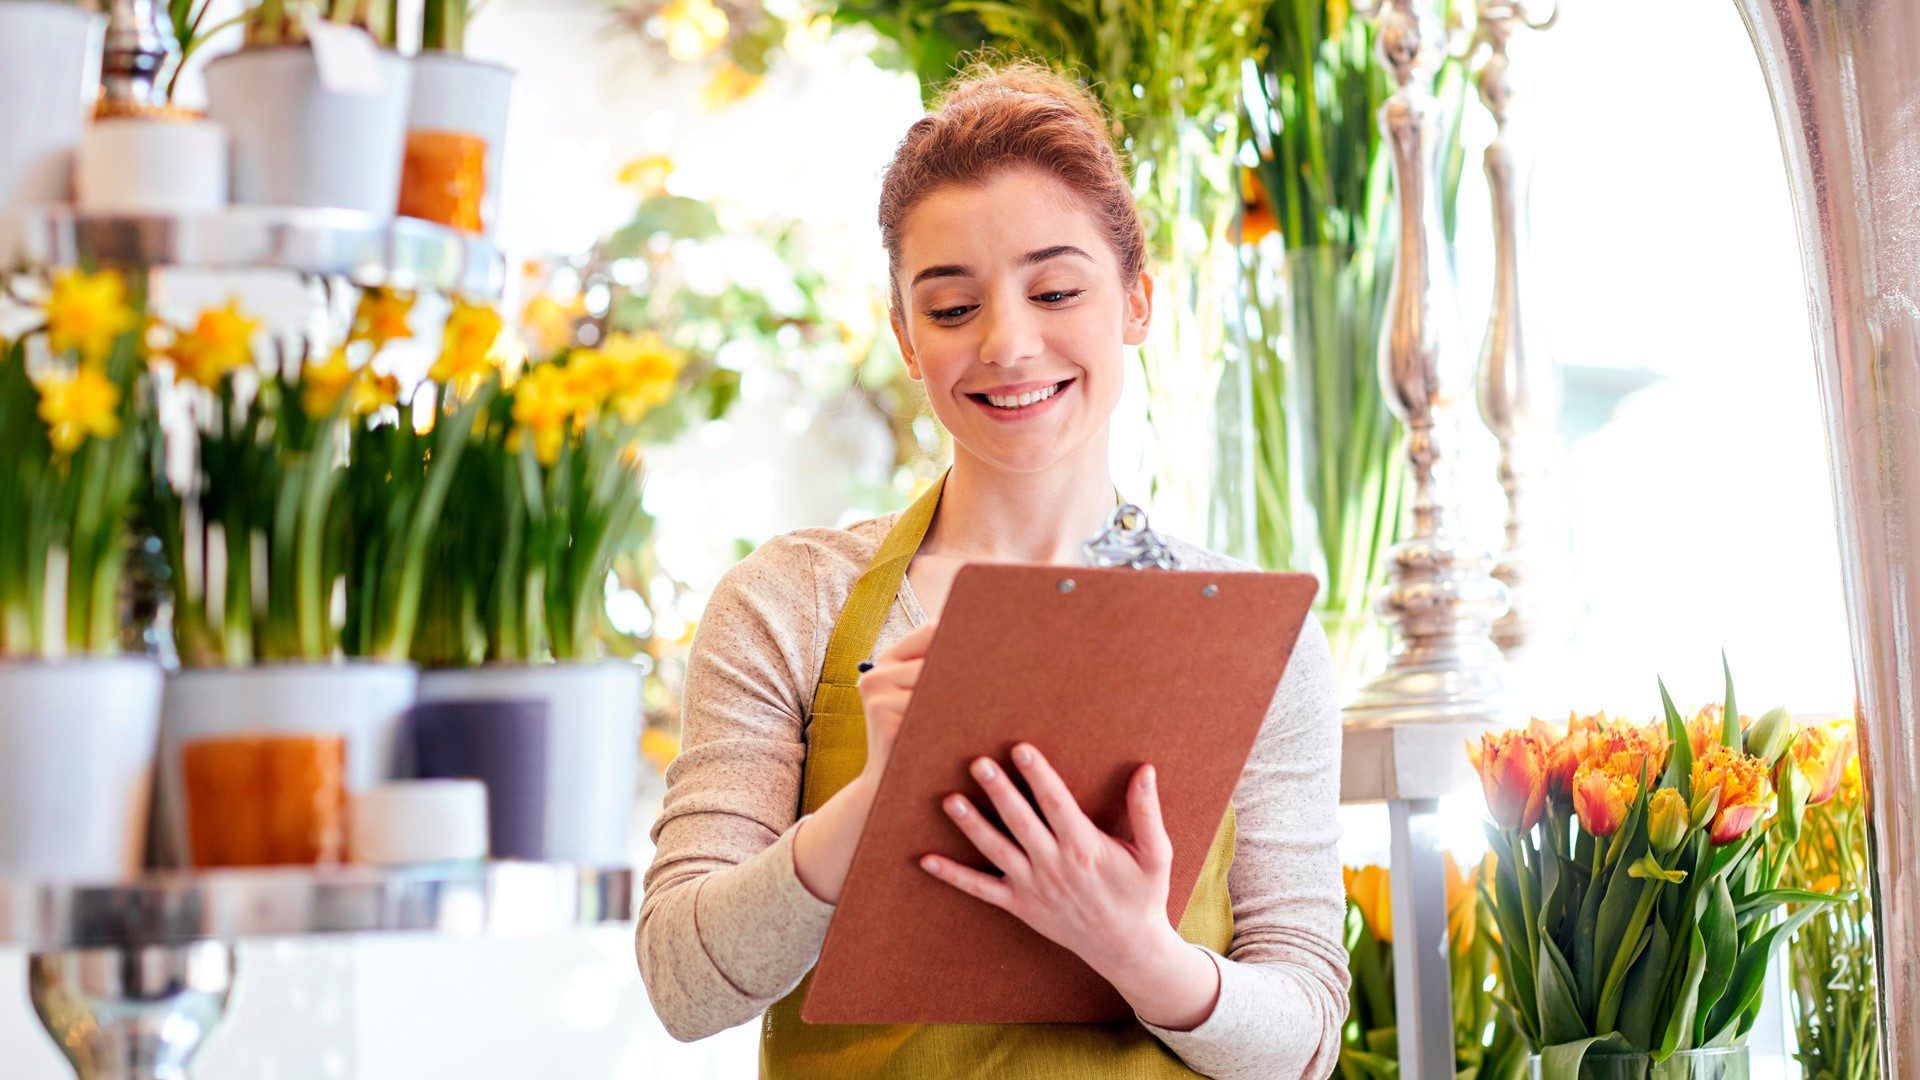 Woman marking items on a clipboard in a flower shop